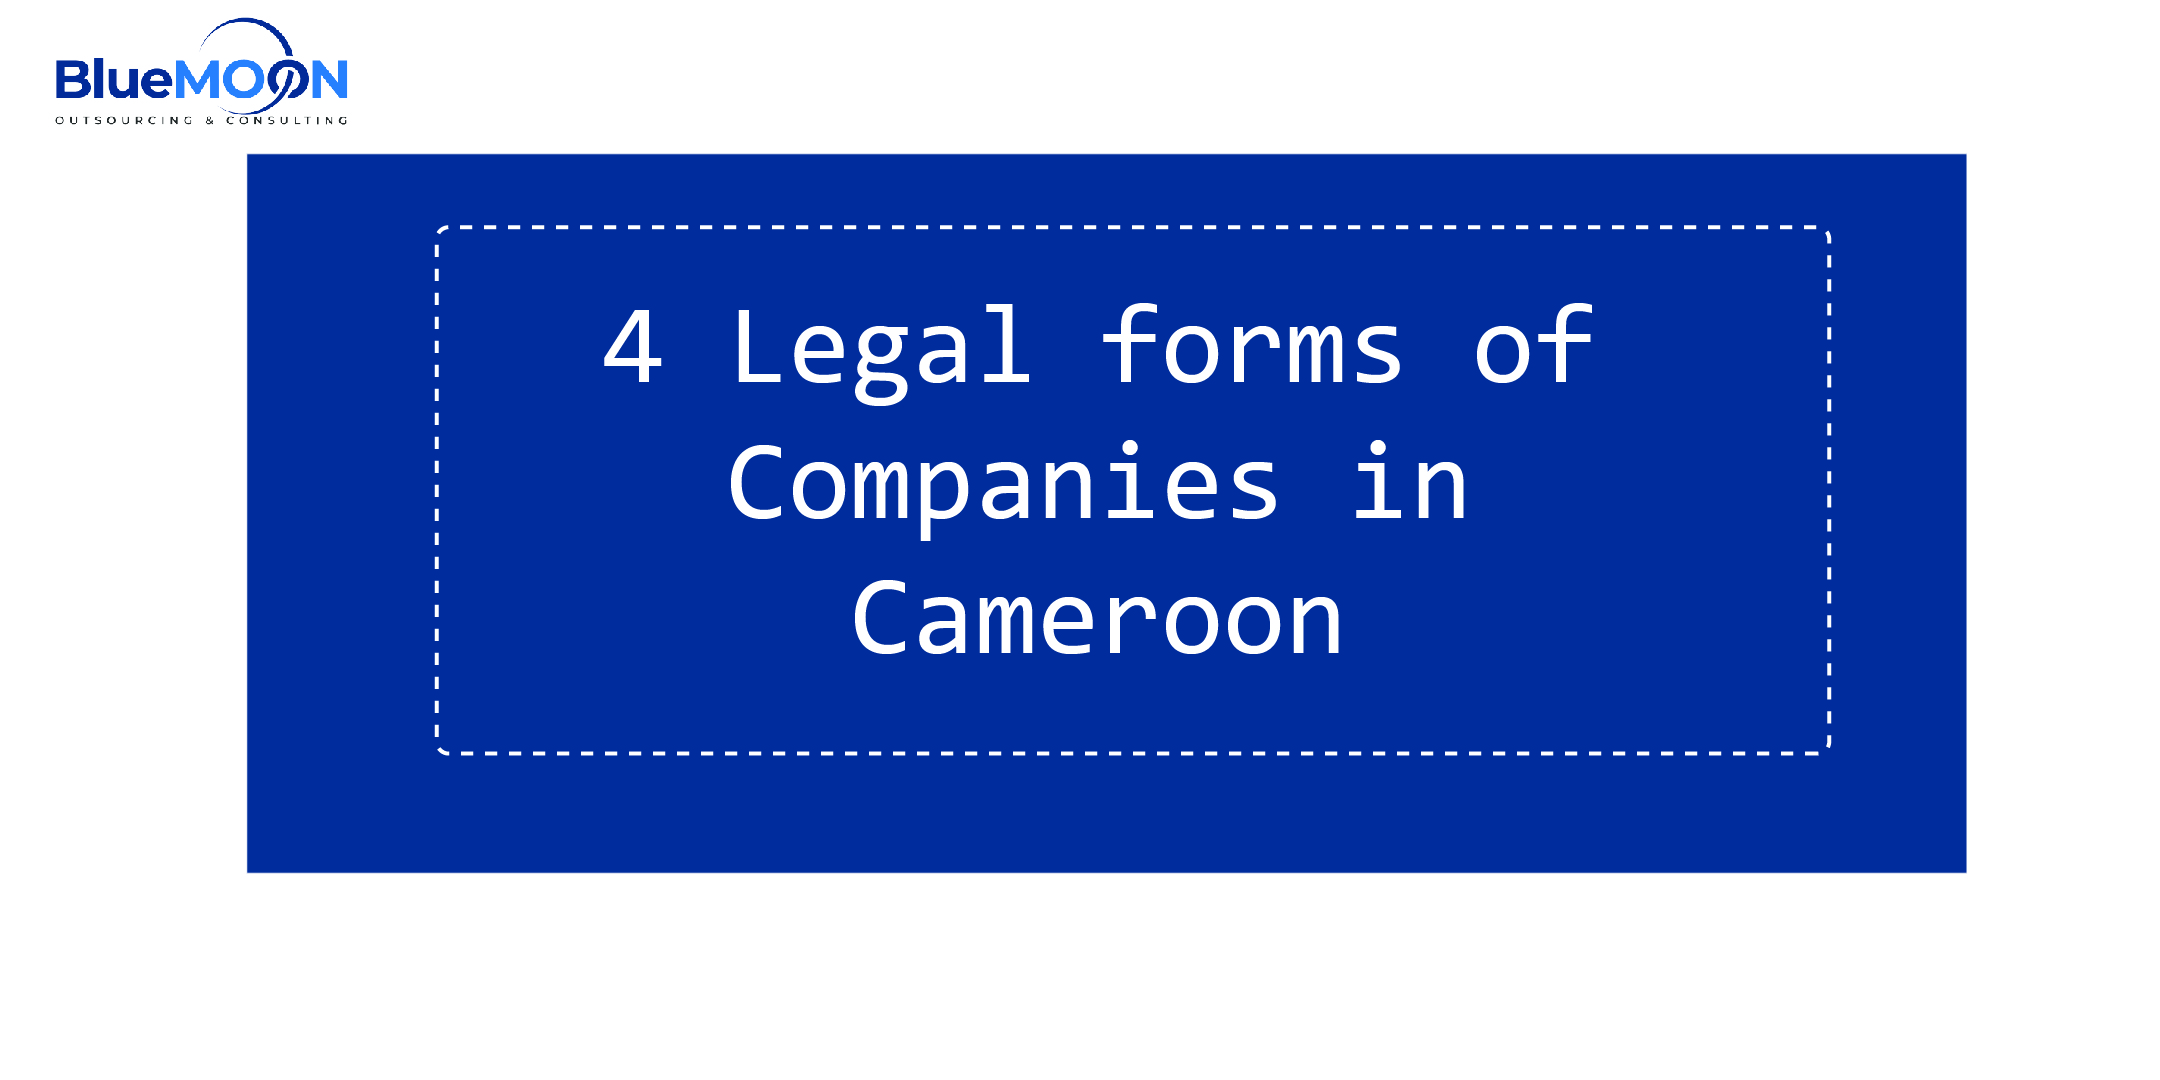 Legal forms of Companies in Cameroon